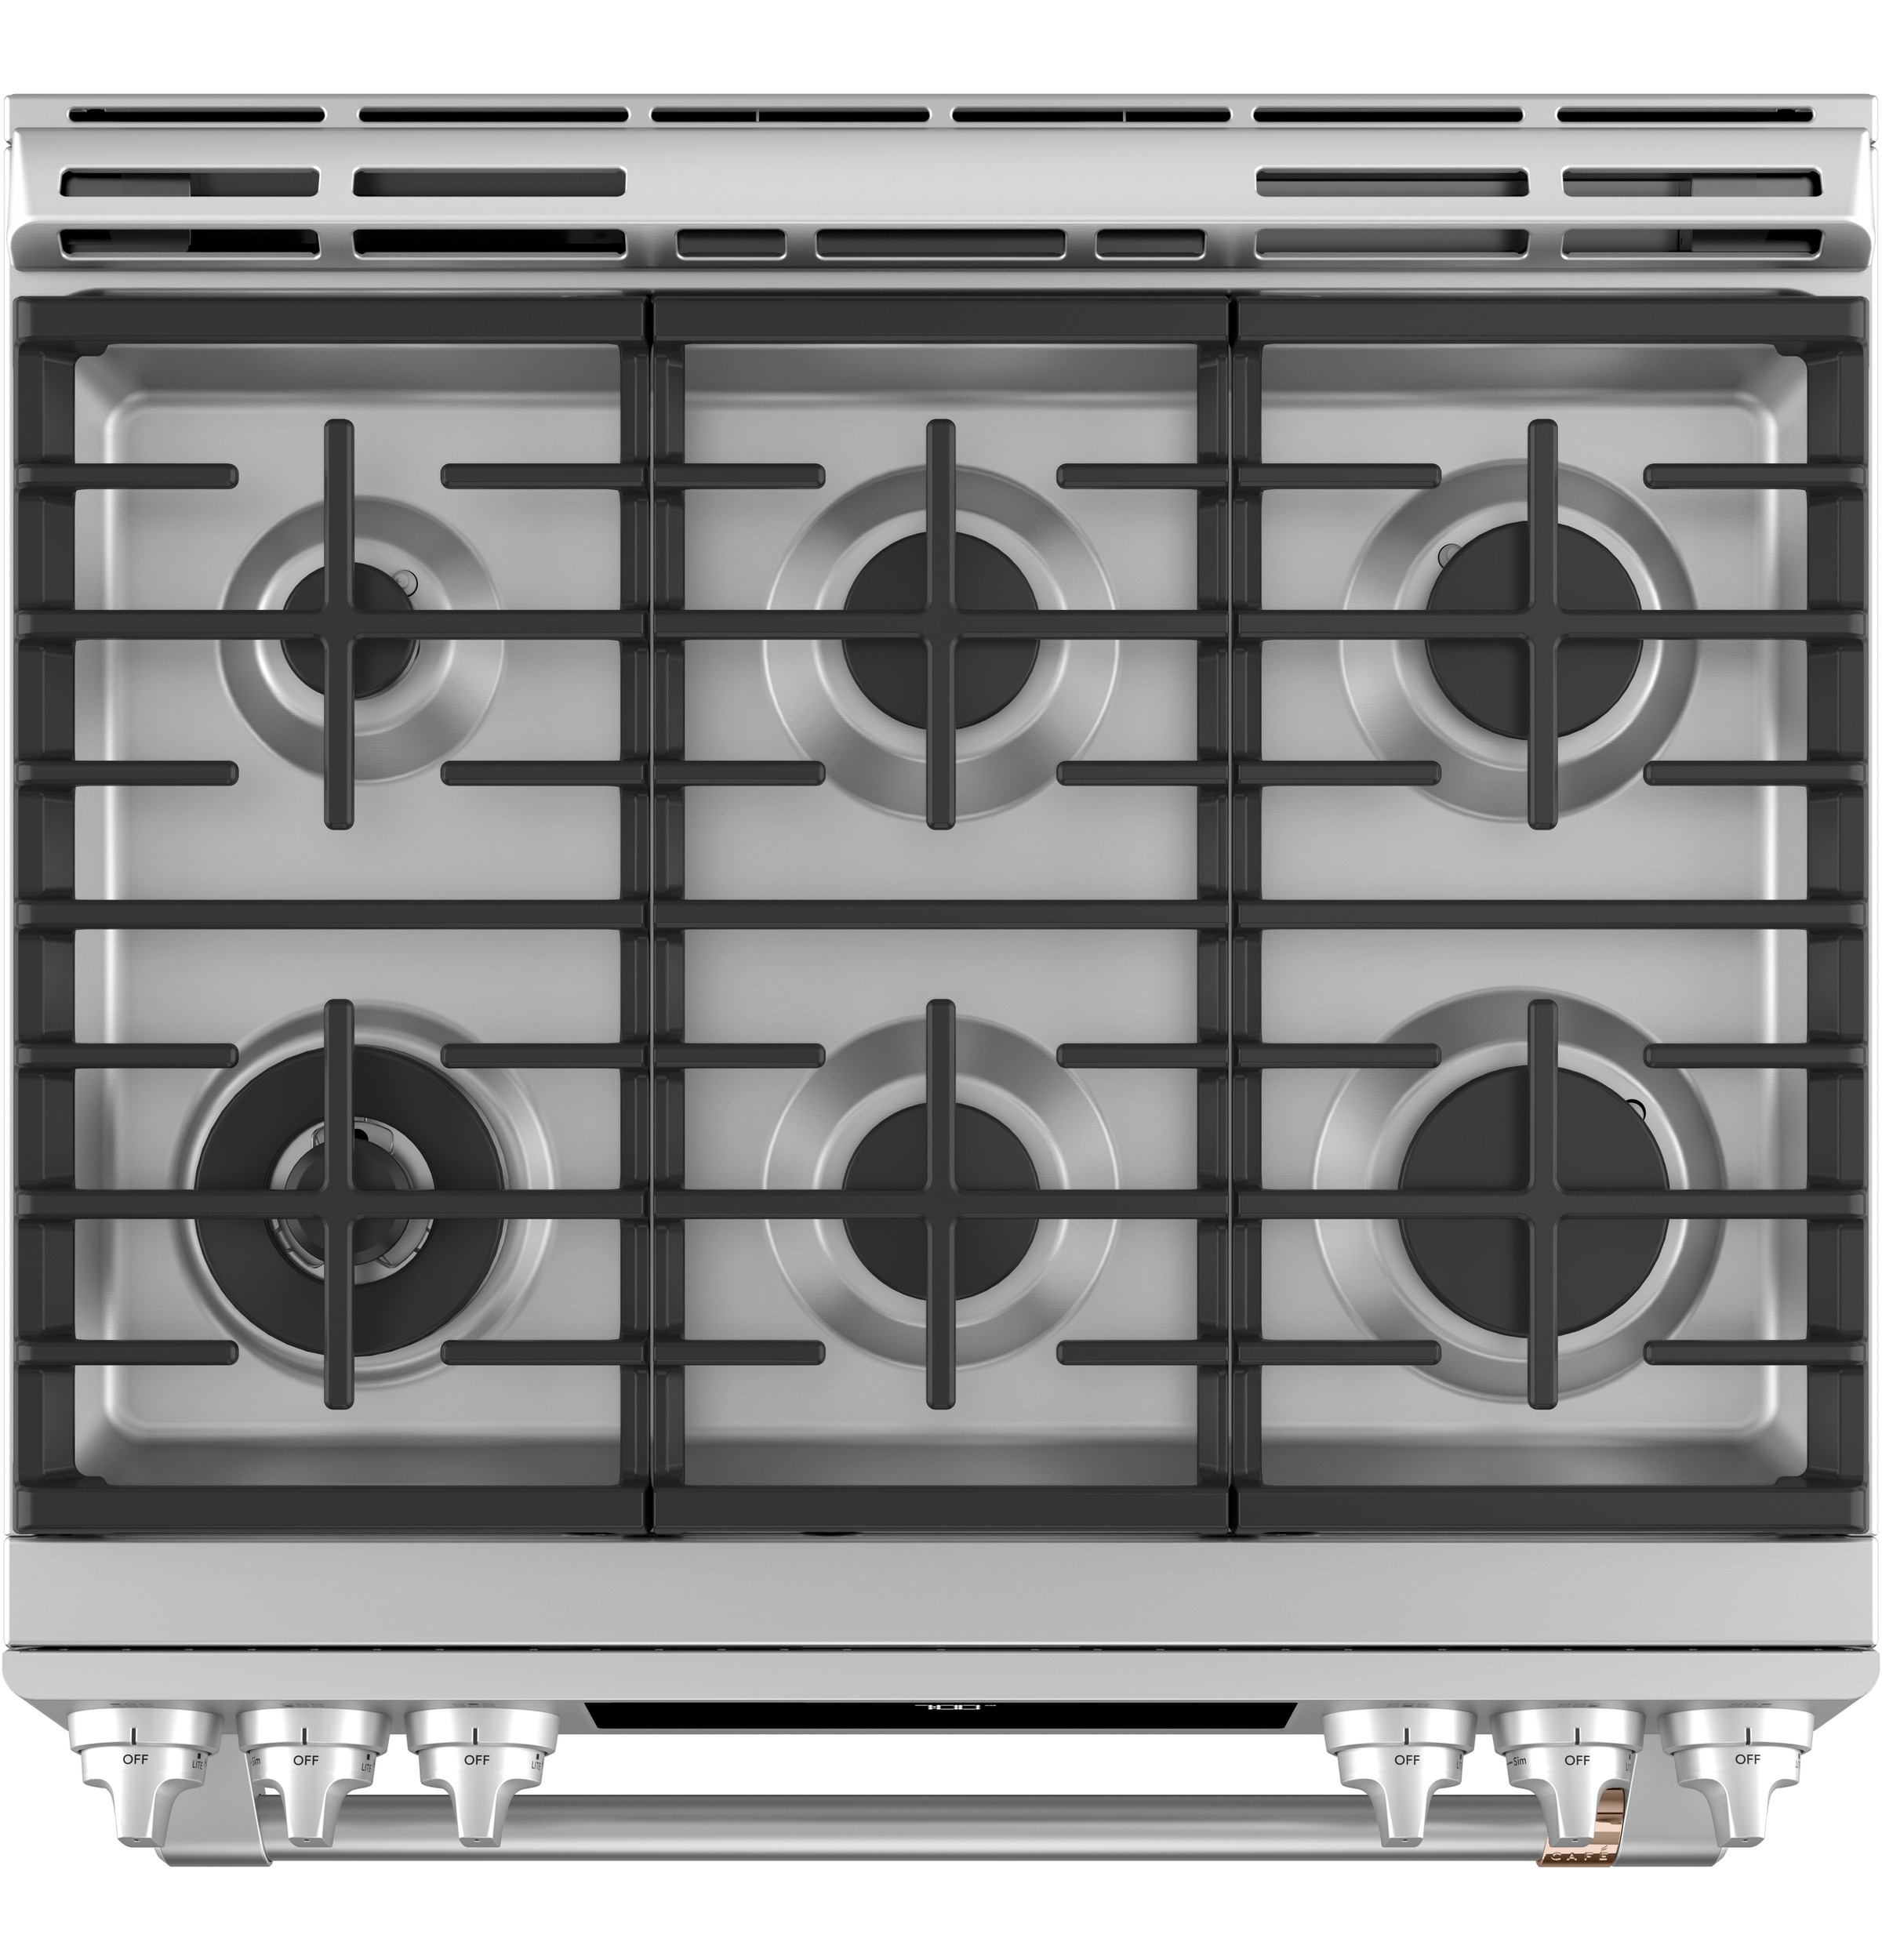 "Model: CGS700P2MS1 | Cafe Café™ 30"" Smart Slide-In, Front-Control, Gas Range with Convection Oven"